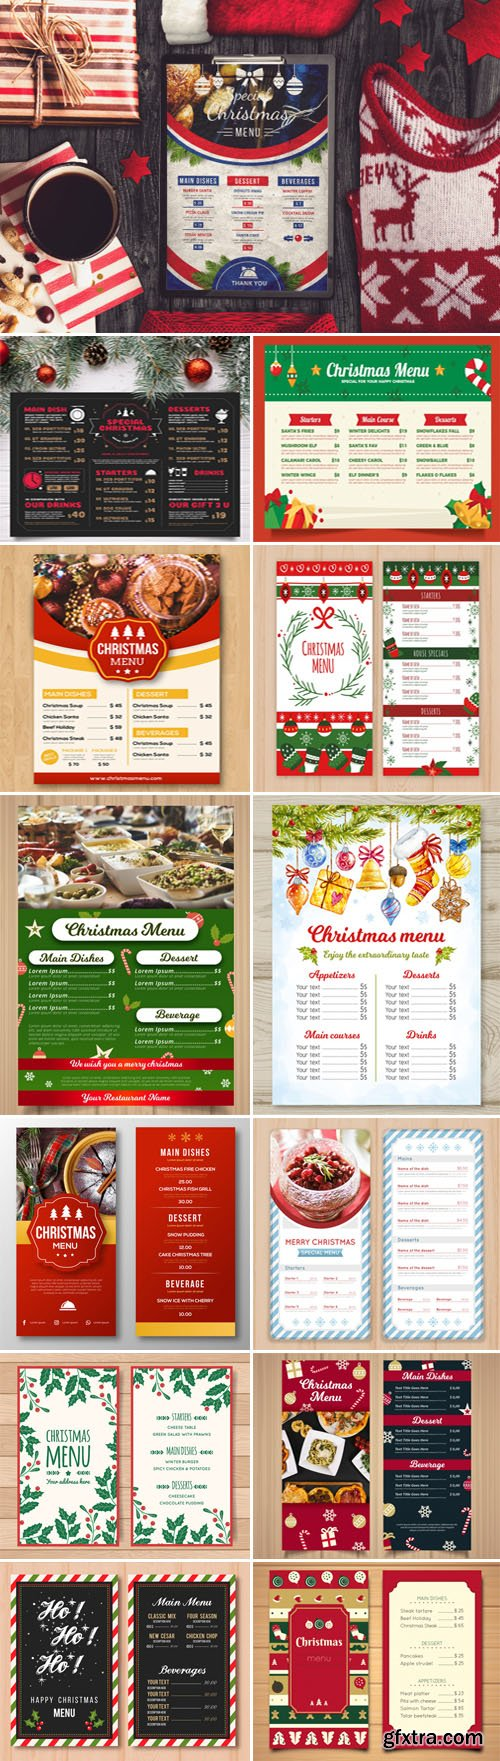 Christmas Menus Vector Templates Collection 1